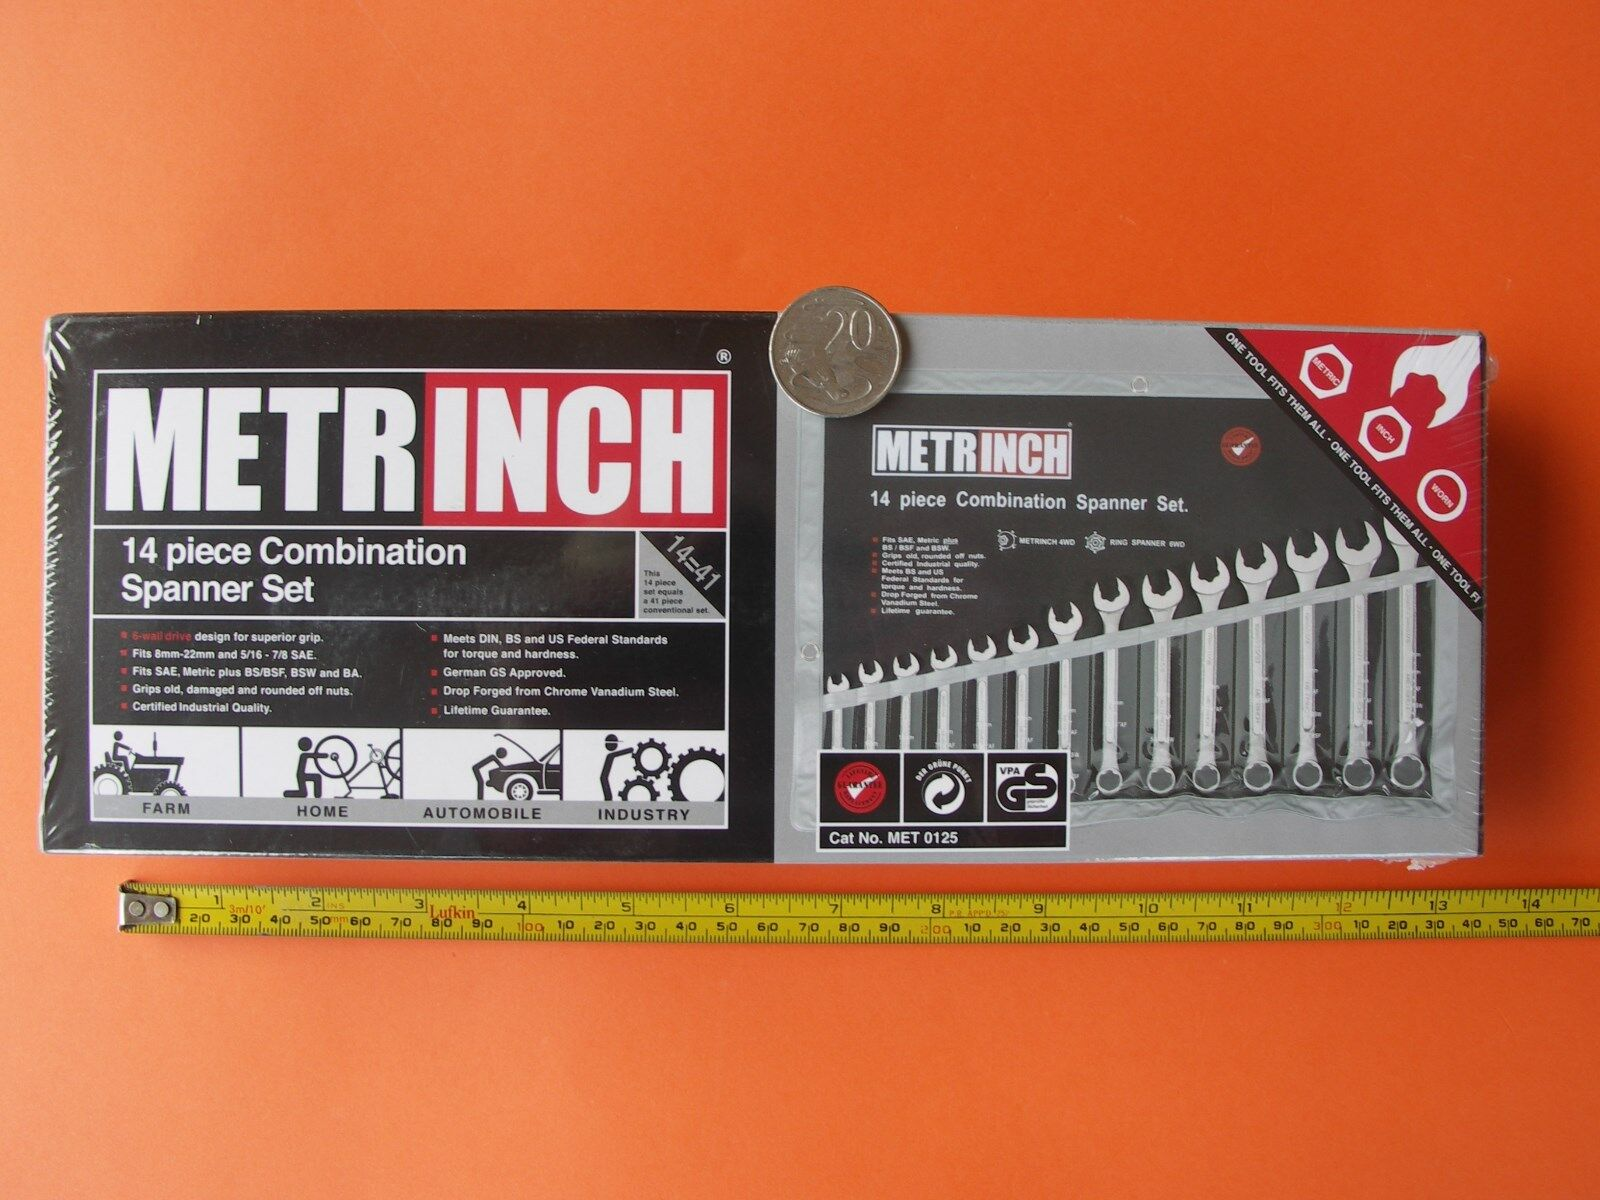 SPANNER COMBINATION WRENCH SET METRINCH 14pce met 8-23mm a f 5 16  - 7 8  + BSW